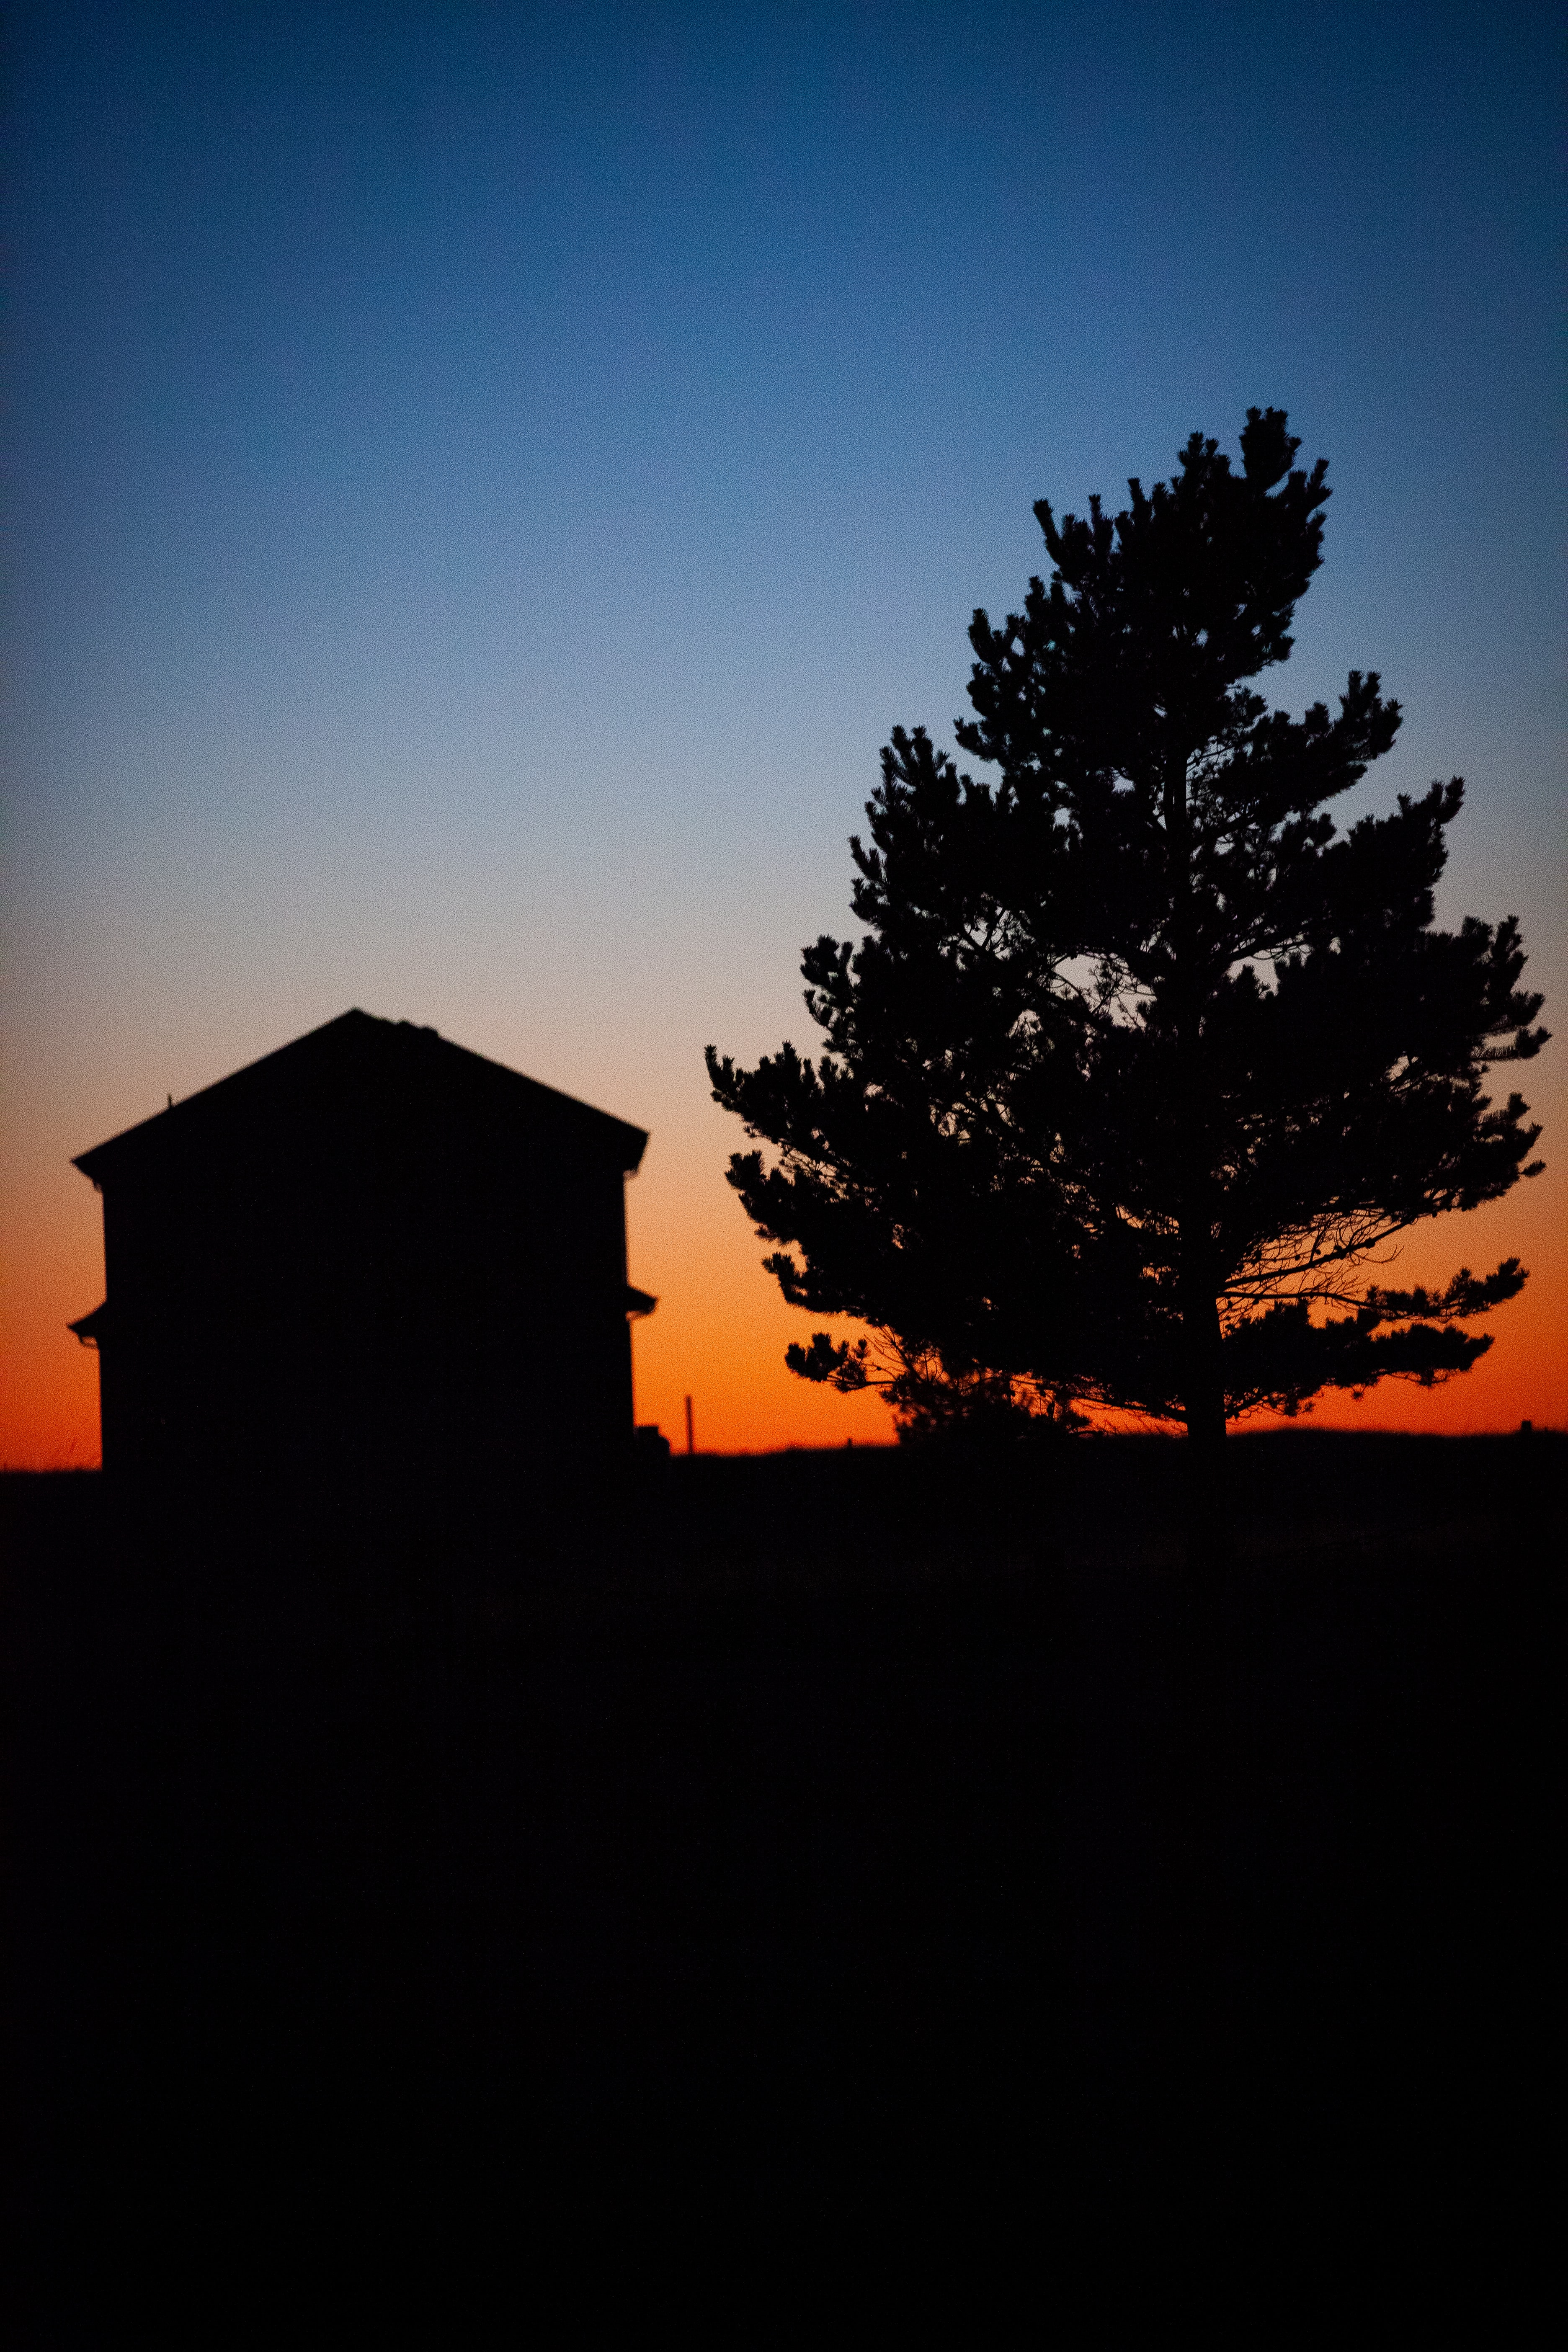 silhouette of house and tree during golden hour